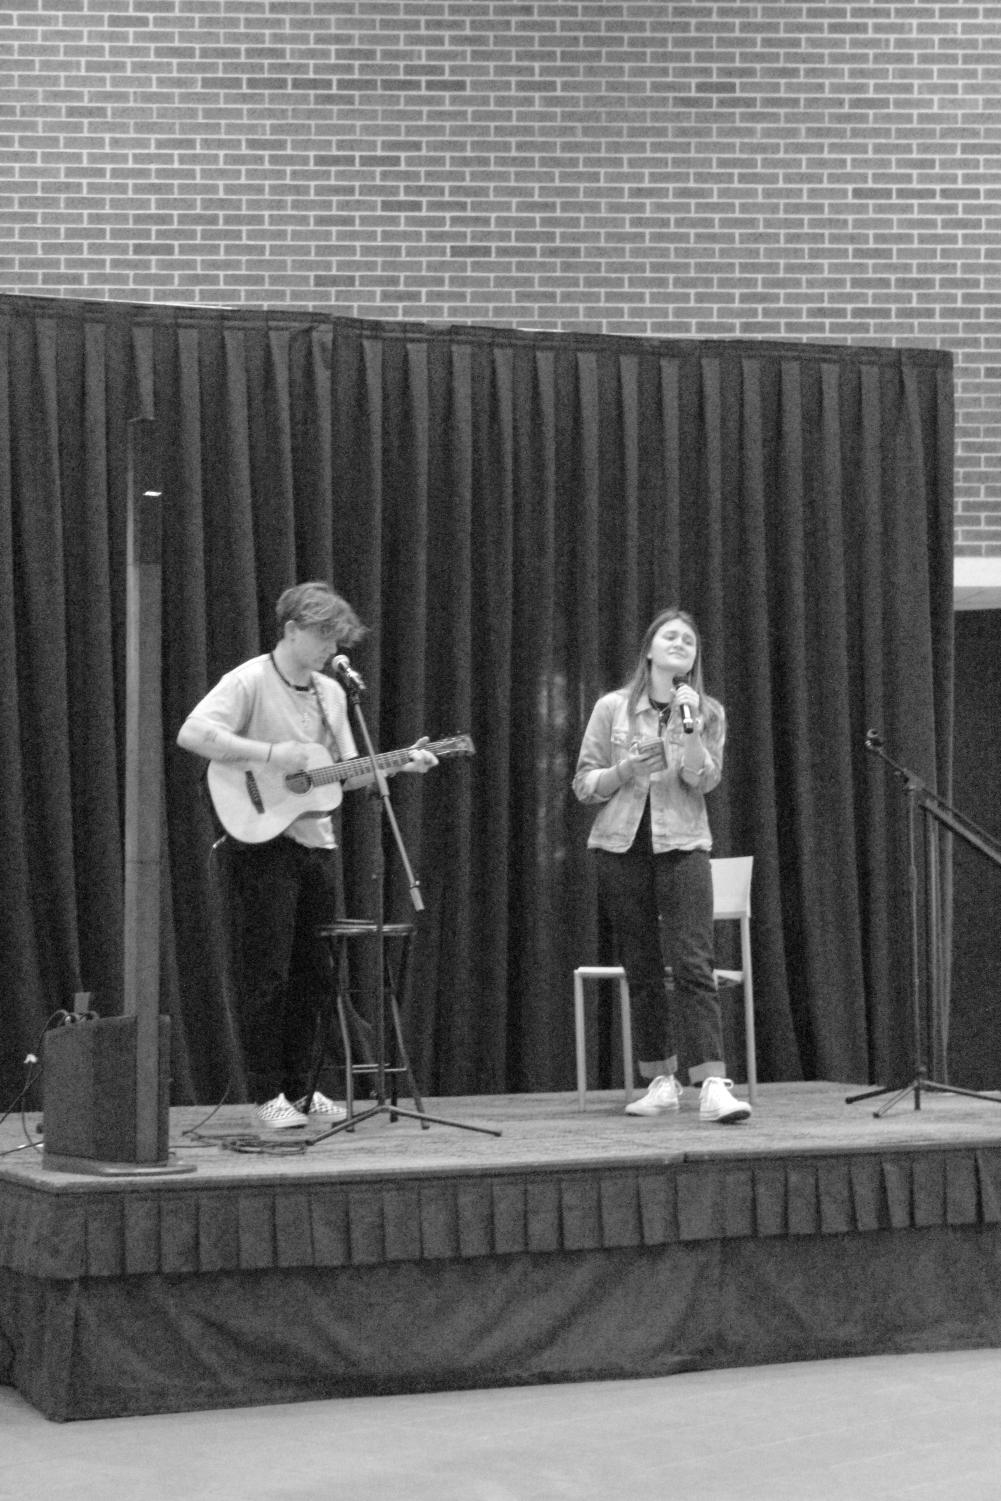 Katherine Pizer and John David Dvorak auditioning for Tarleton's got Talent by singing The Blessing by Kari Jobe and Cody Carnes on Feb. 25, 2021.